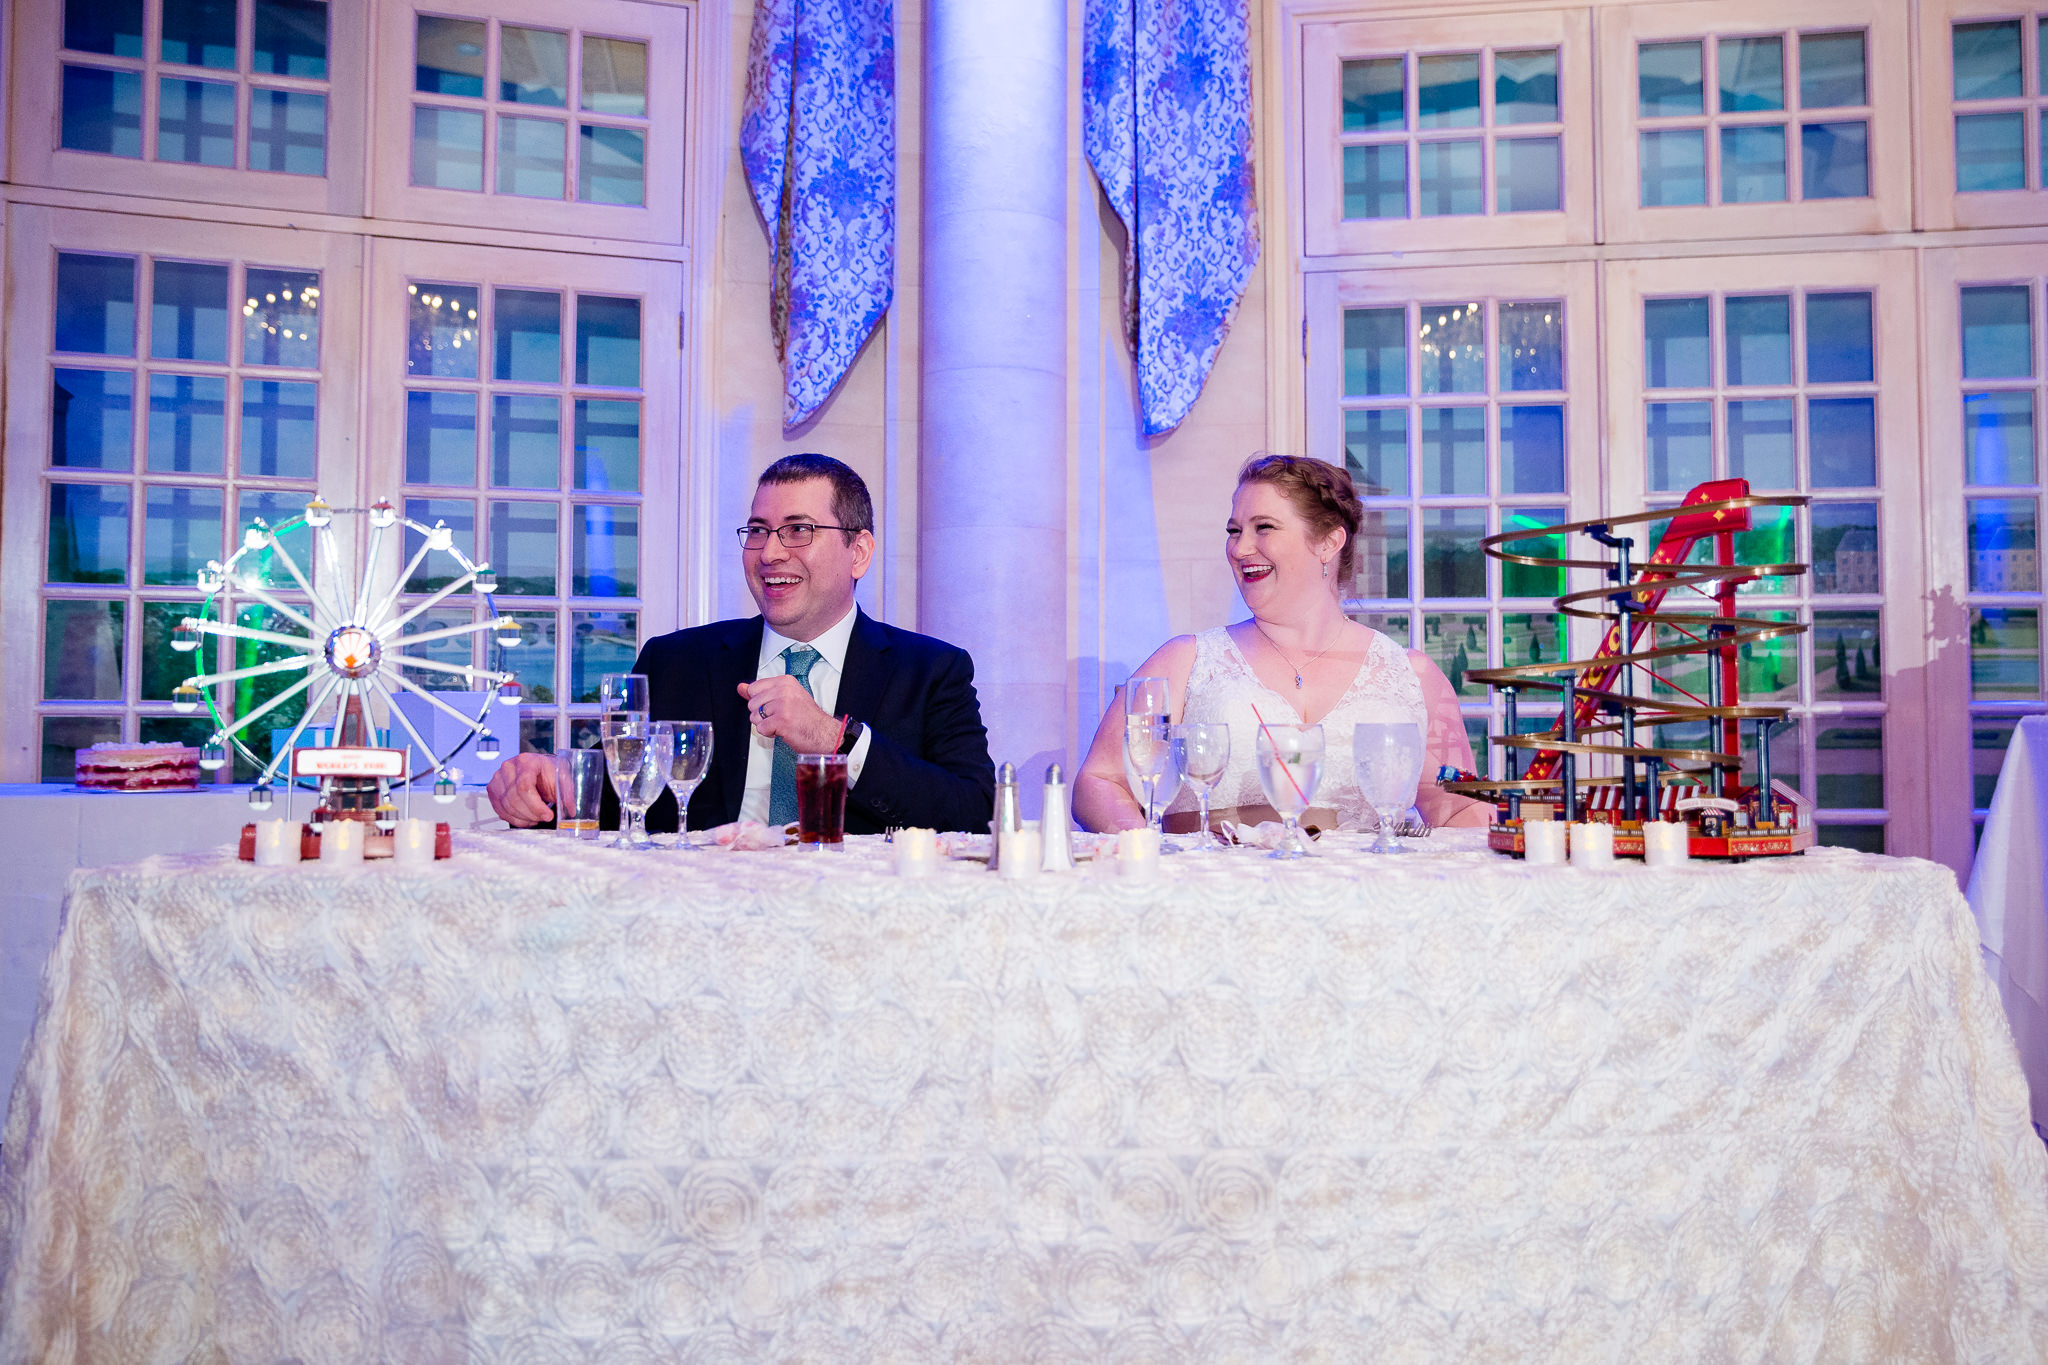 couple laughs at wedding party speeches